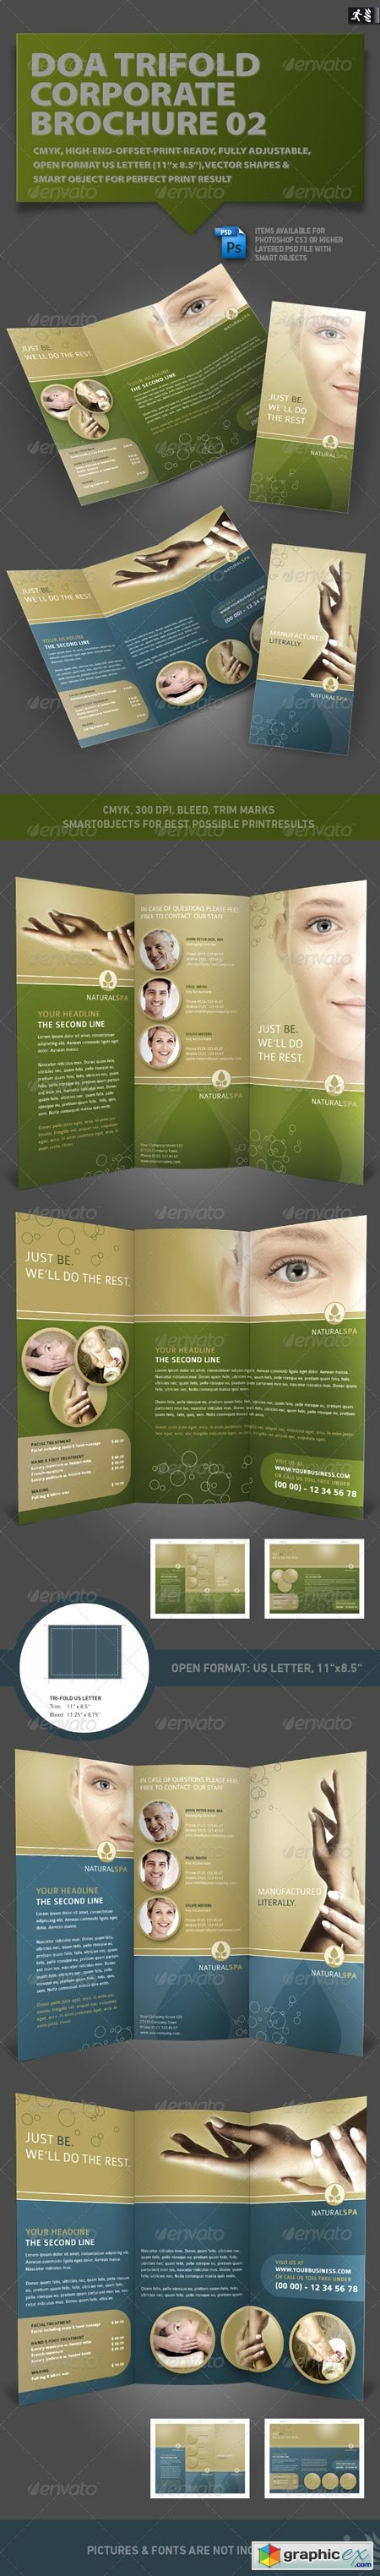 DOA Trifold Corporate Brochure 02 2343316